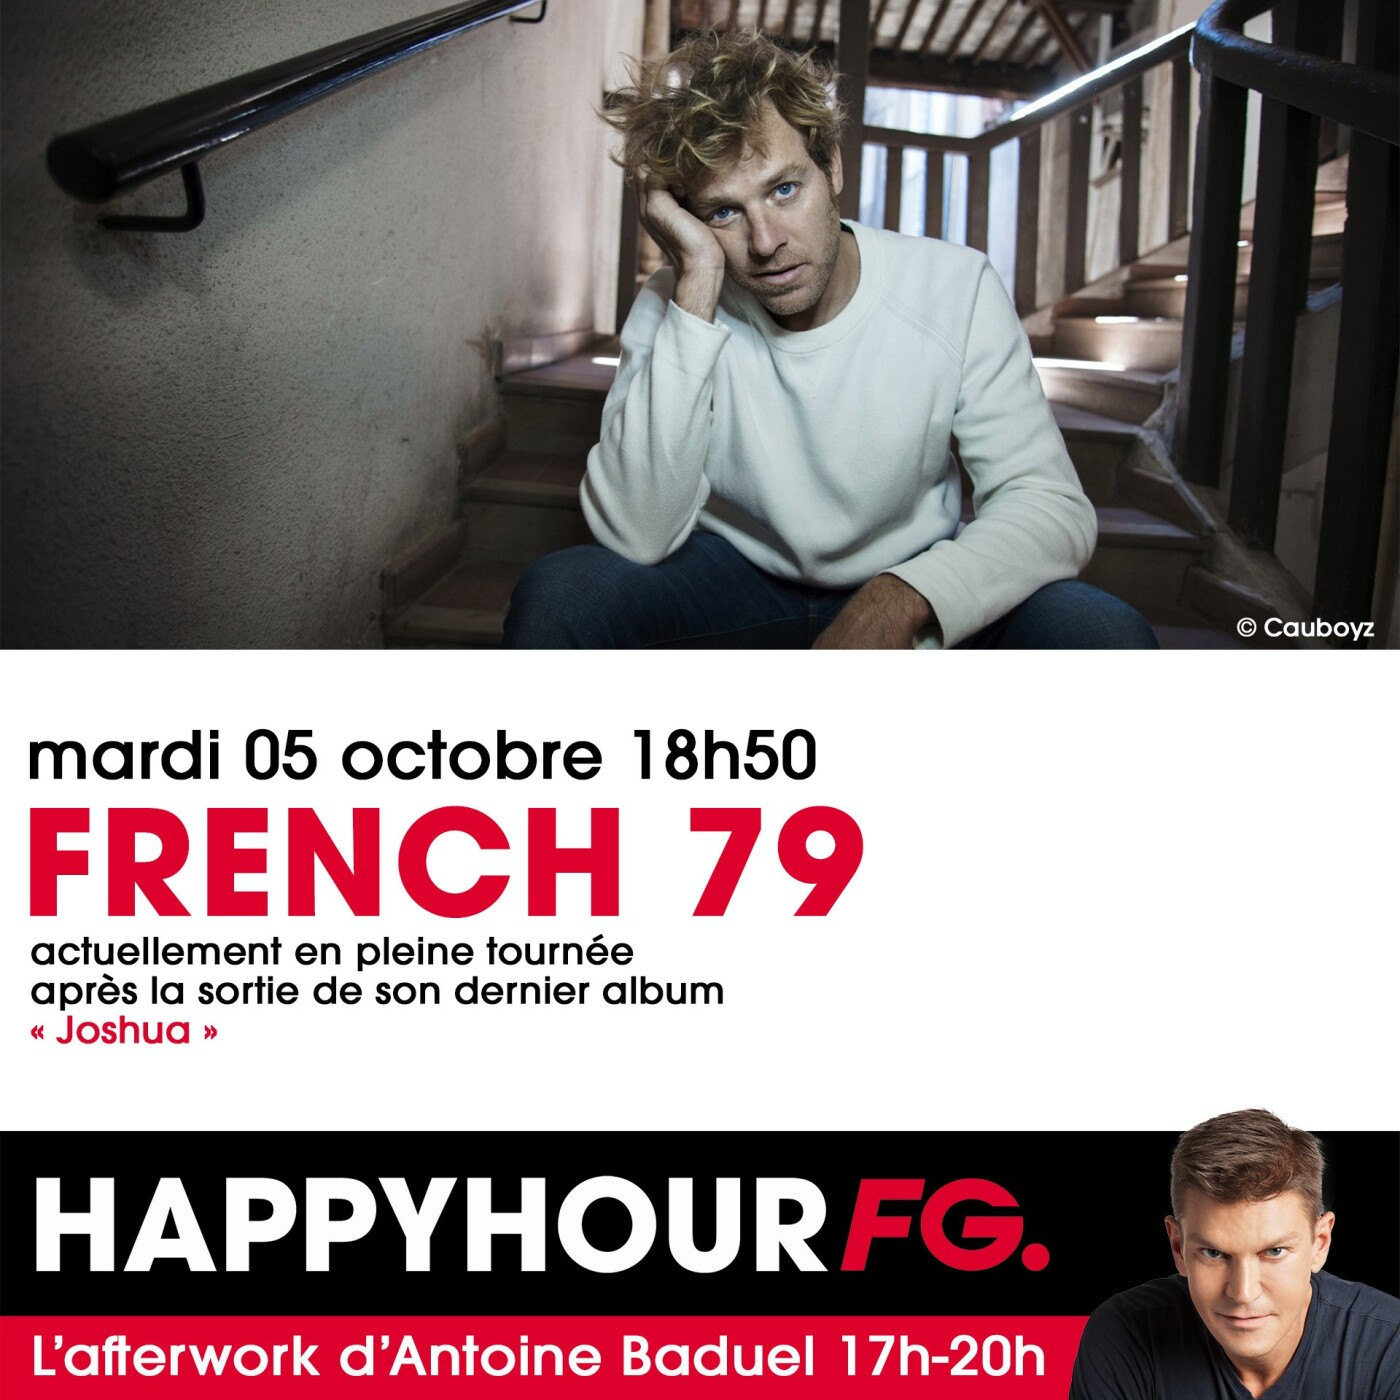 HAPPY HOUR INTERVIEW : FRENCH 79